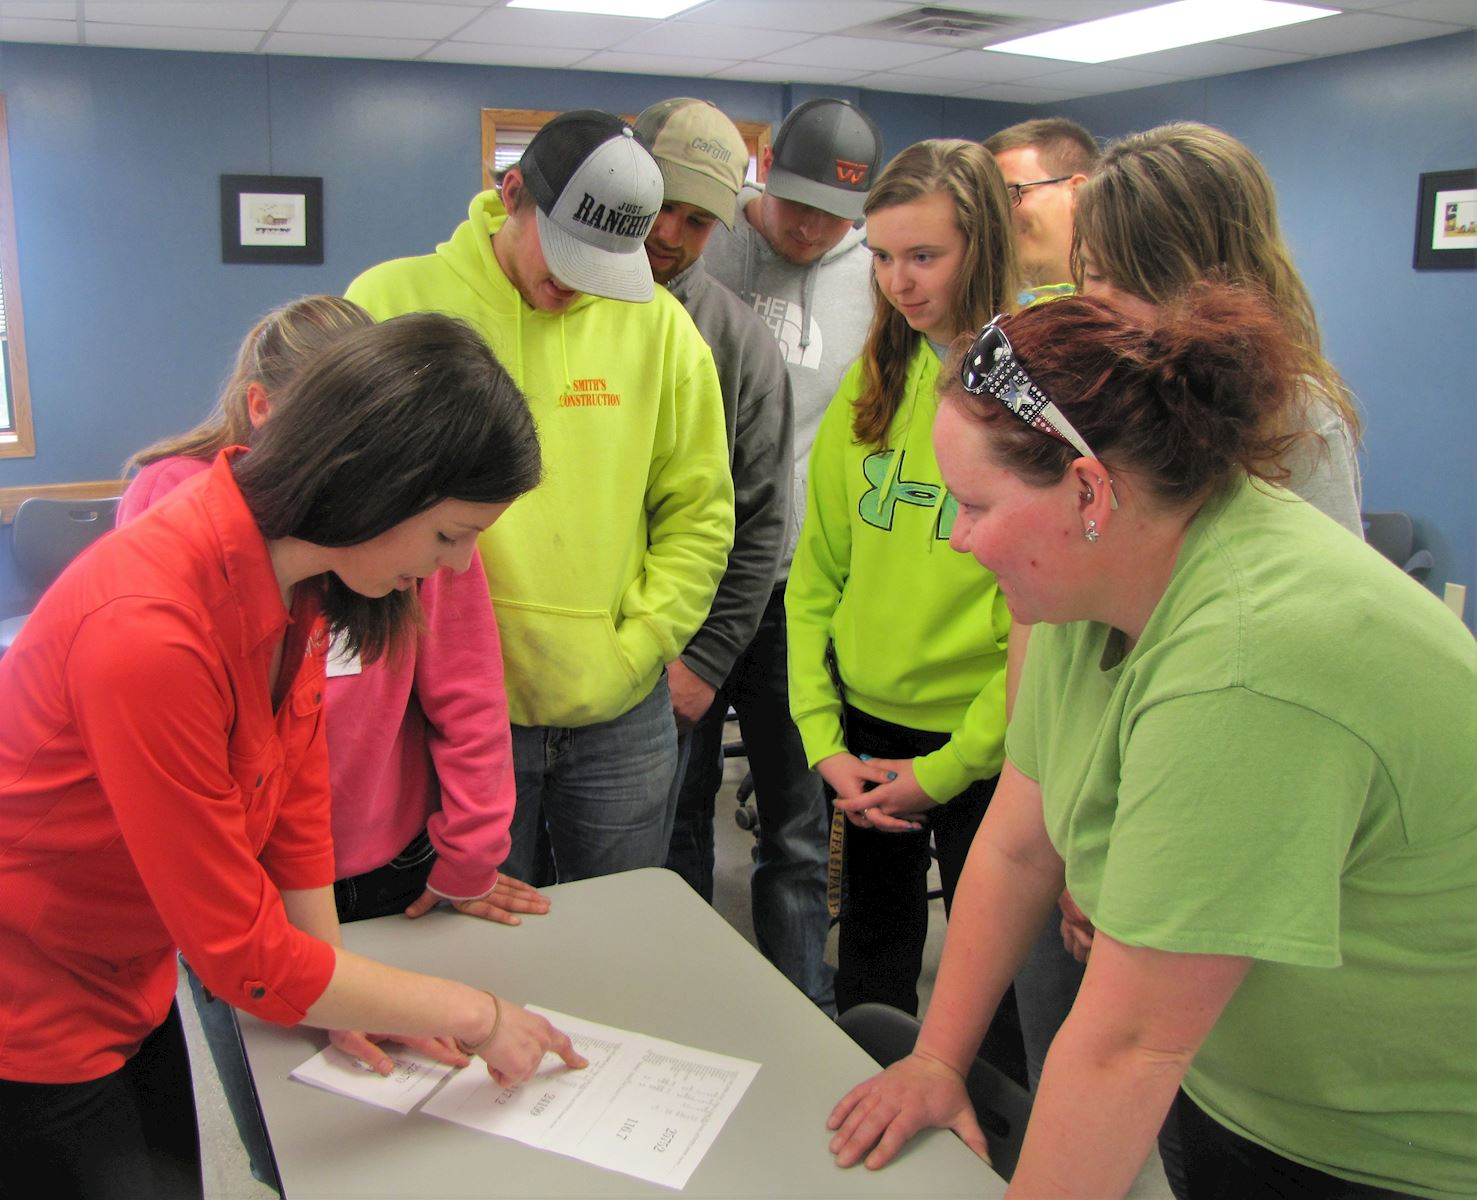 AMVC is resource for SWCC students in Creston